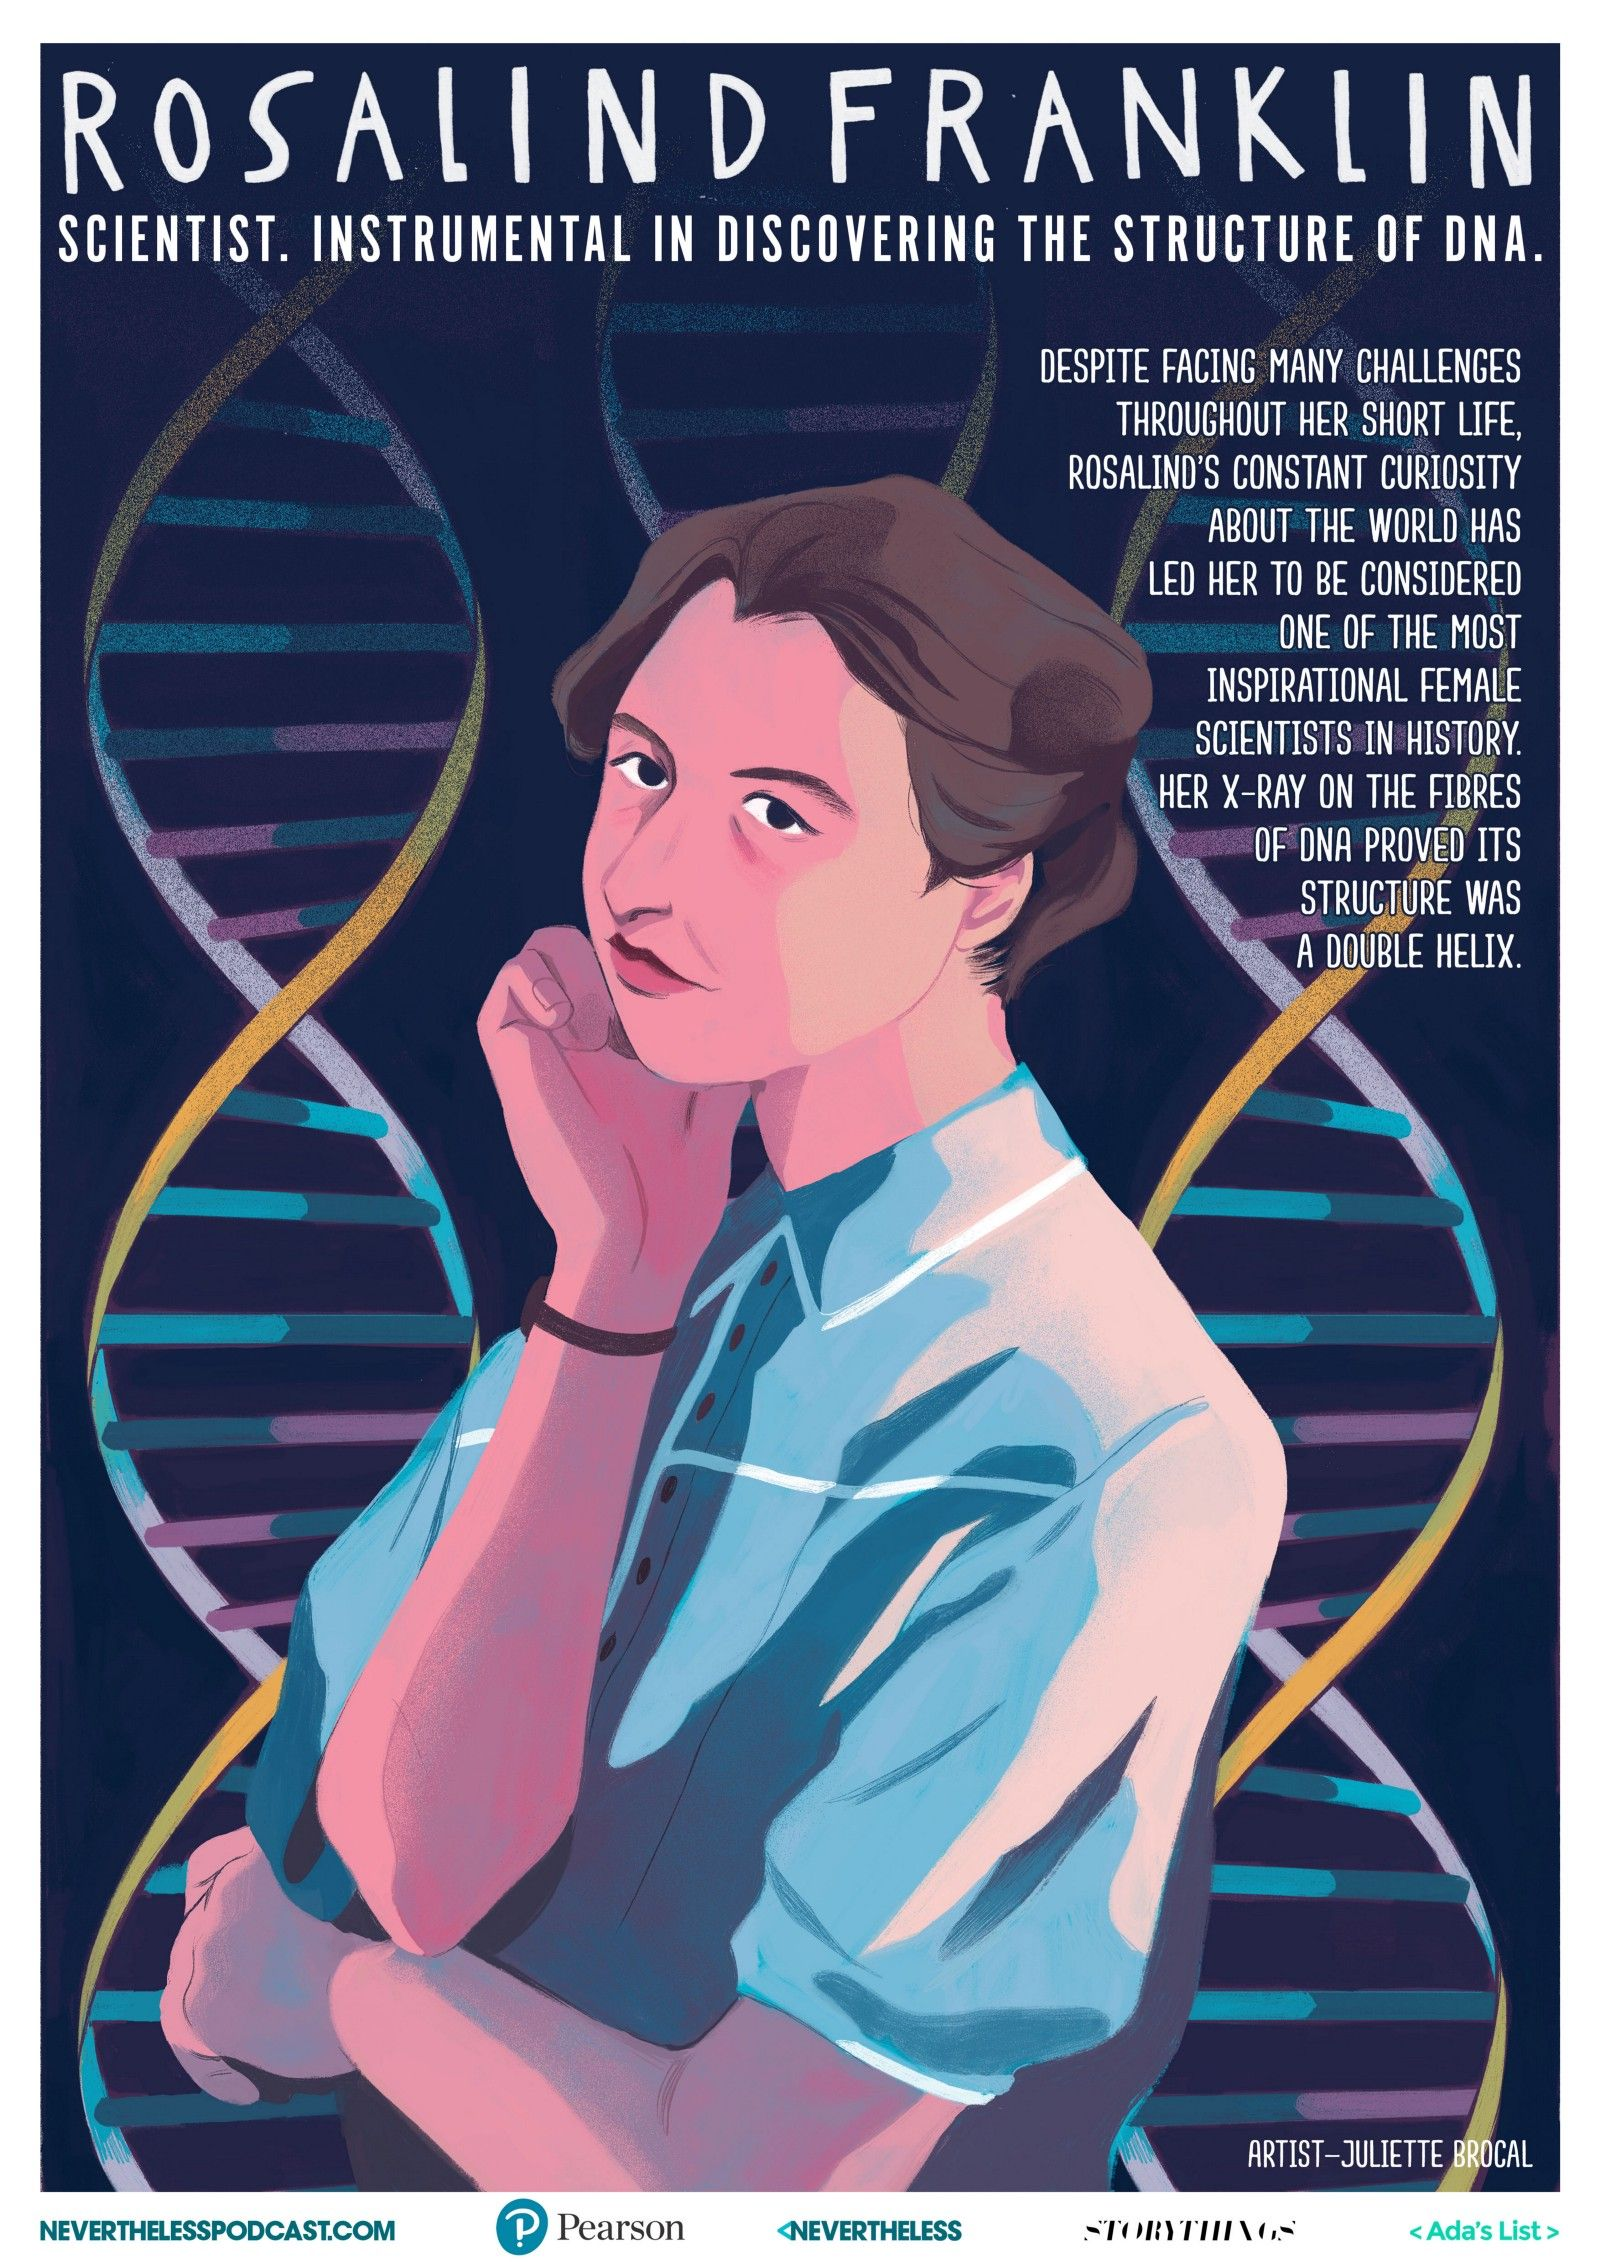 Photo of Downloadable STEM Role Models Posters Celebrate Women Innovators As Illustrated By Women Artists